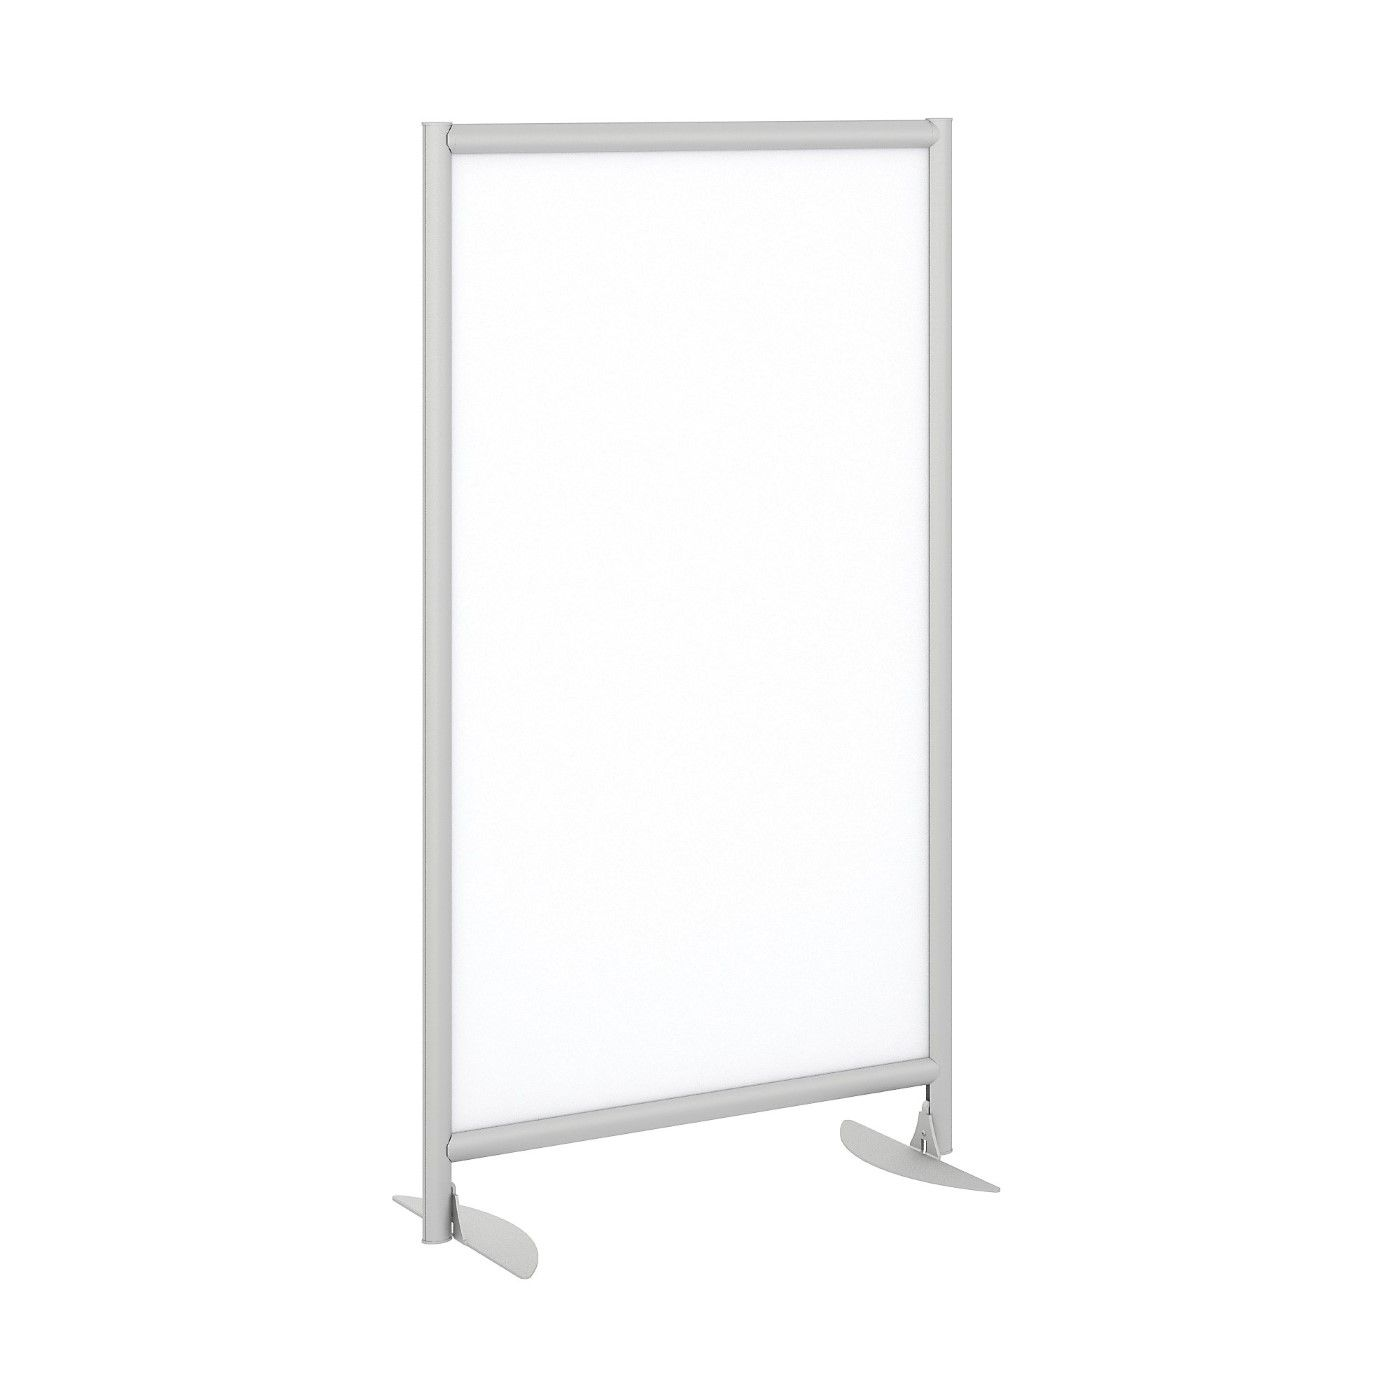 BUSH BUSINESS FURNITURE FREESTANDING WHITE BOARD PRIVACY PANEL WITH STATIONARY BASE. FREE SHIPPING SALE DEDUCT 10% MORE ENTER '10percent' IN COUPON CODE BOX WHILE CHECKING OUT. ENDS 5-31-20.